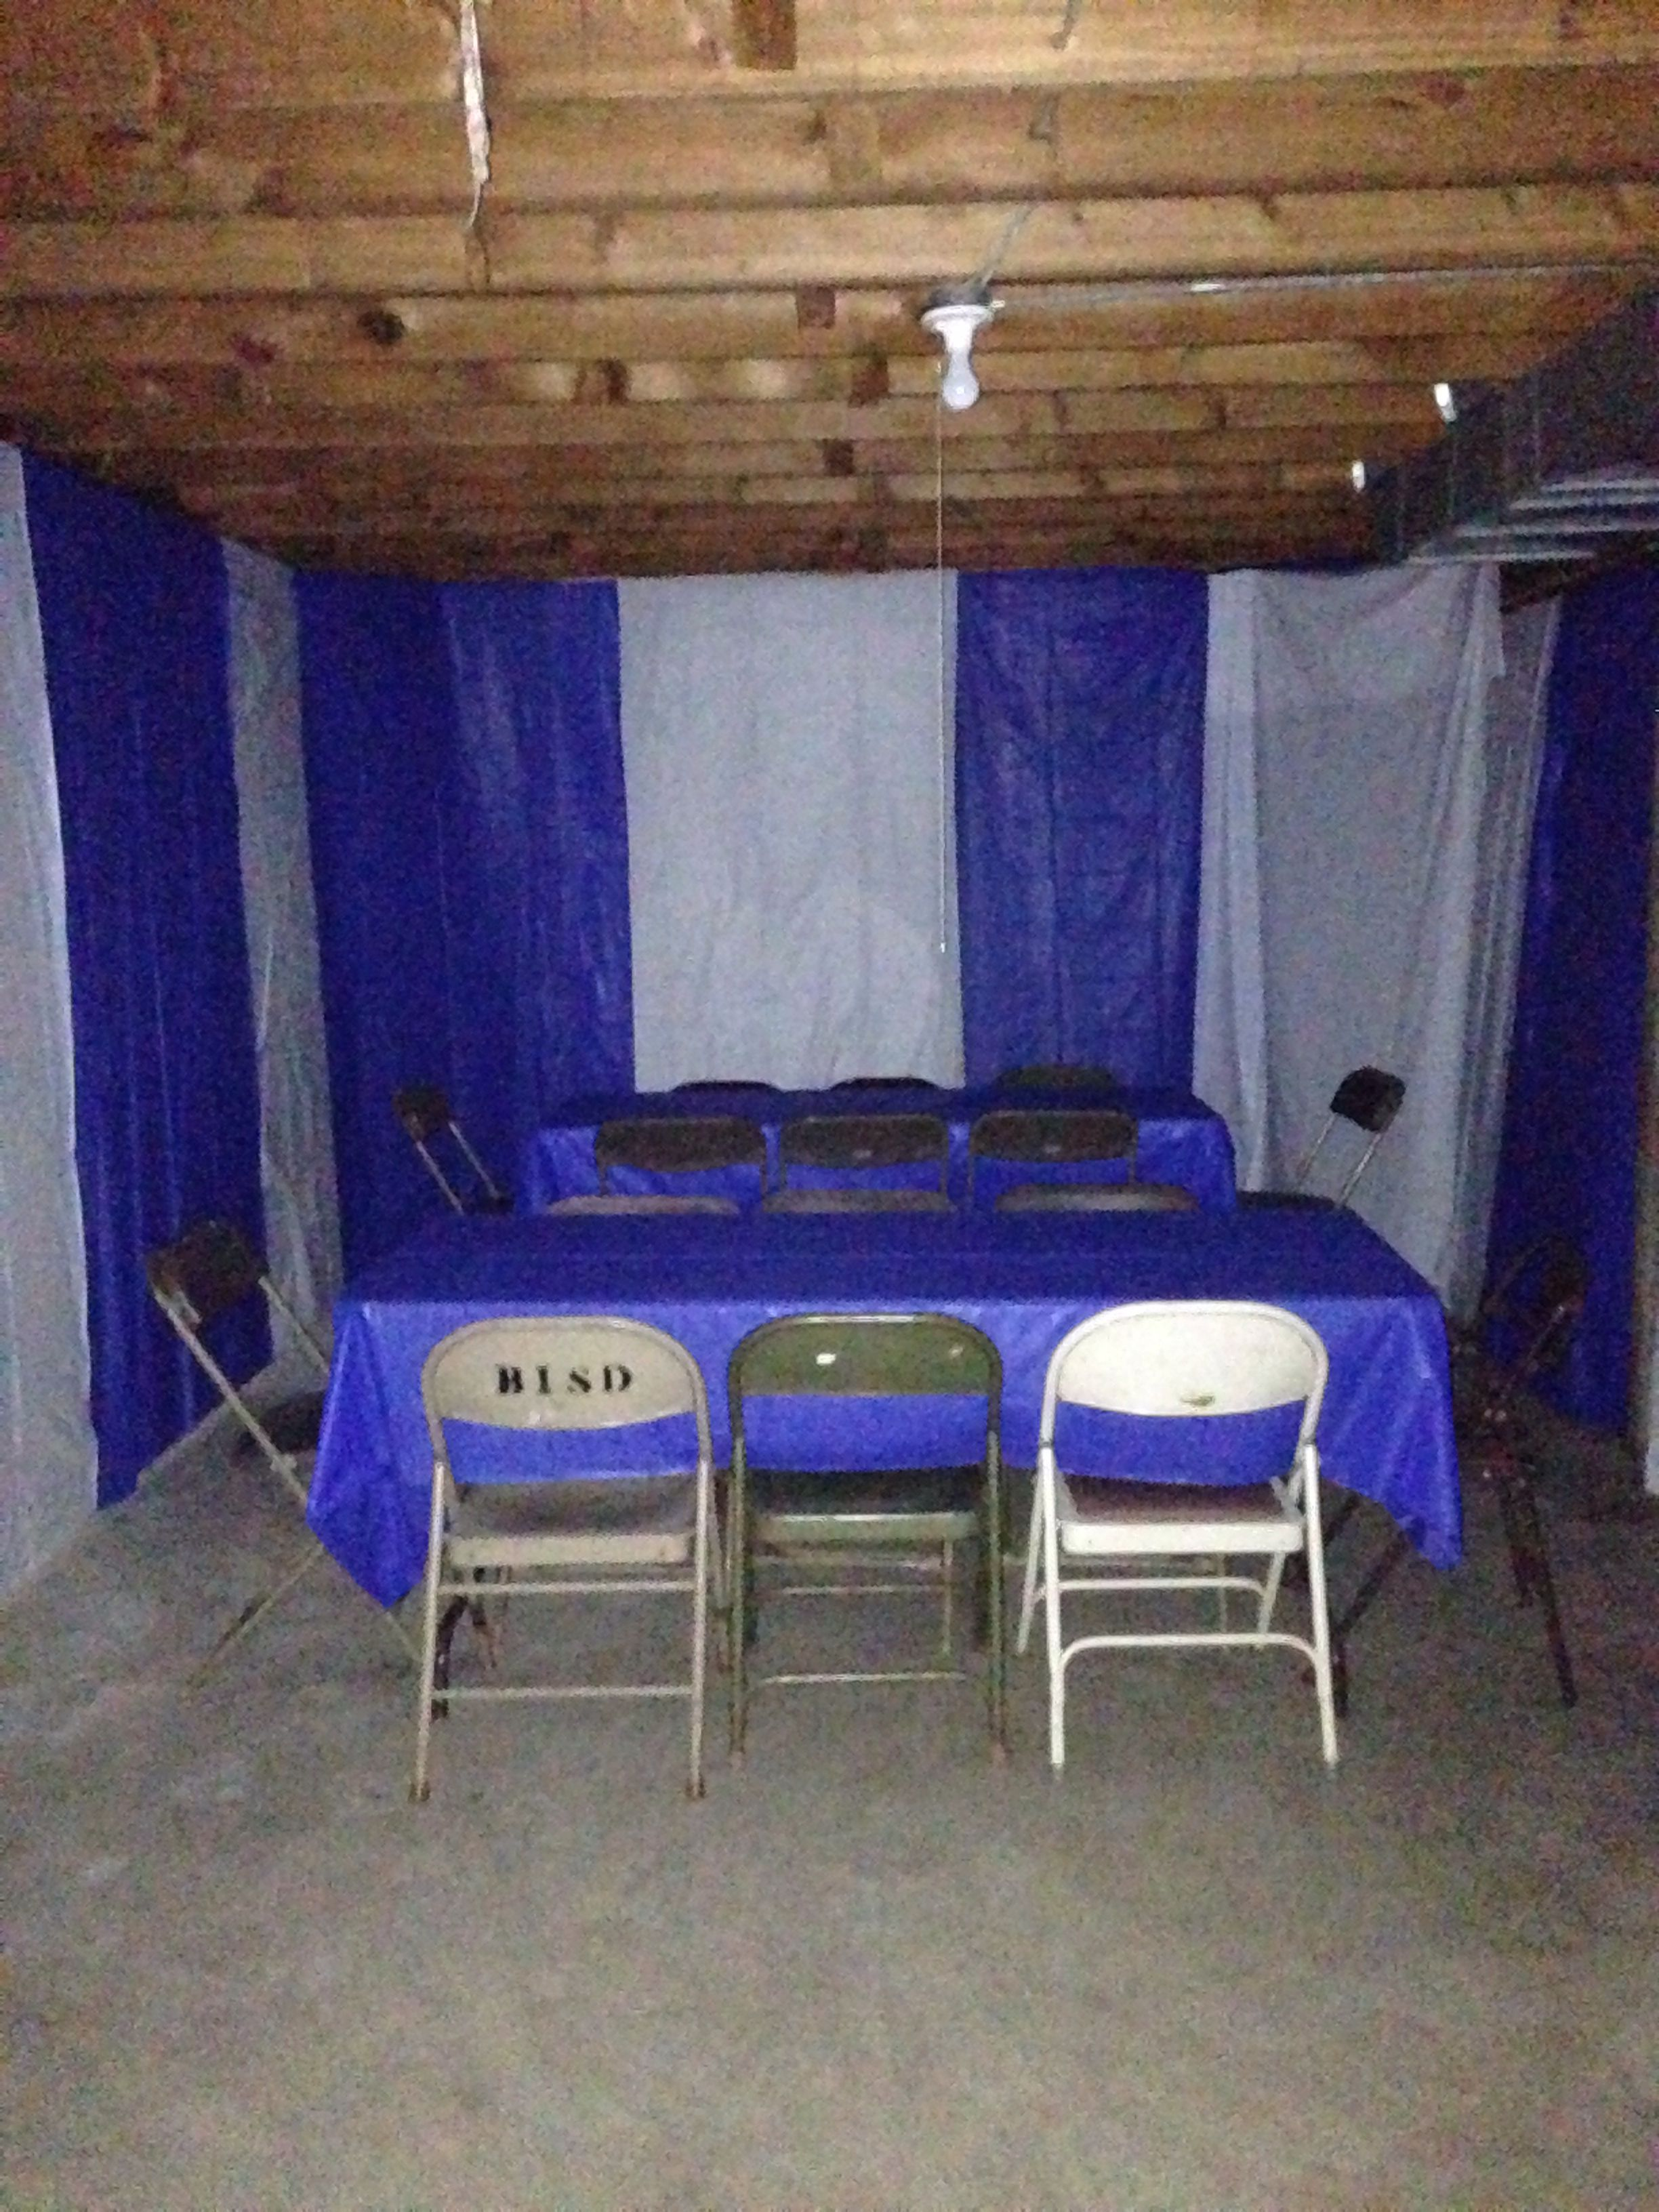 I Have An Unfinished Basement With Cement Walls So I Used Plastic